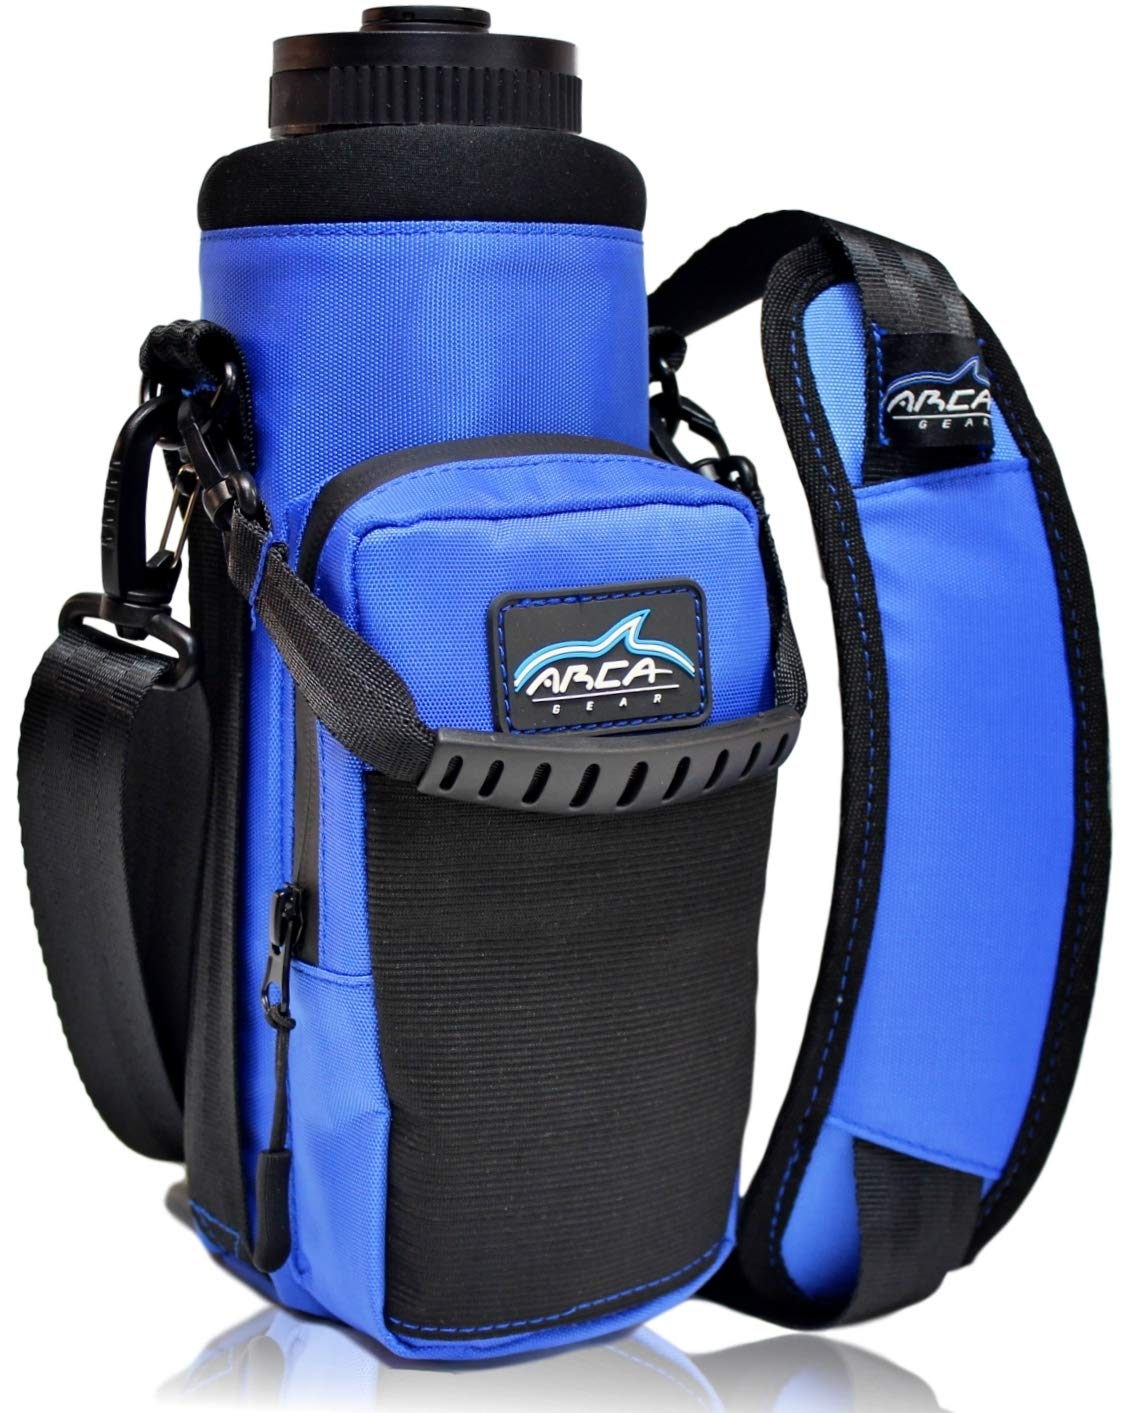 Arca Gear 40 oz Hydro Carrier - Insulated Water Bottle Sling w/Carry Handle, Shoulder Strap, Wallet and Two Pouches - The Perfect Flask Accessory - Deep Blue by Arca Gear